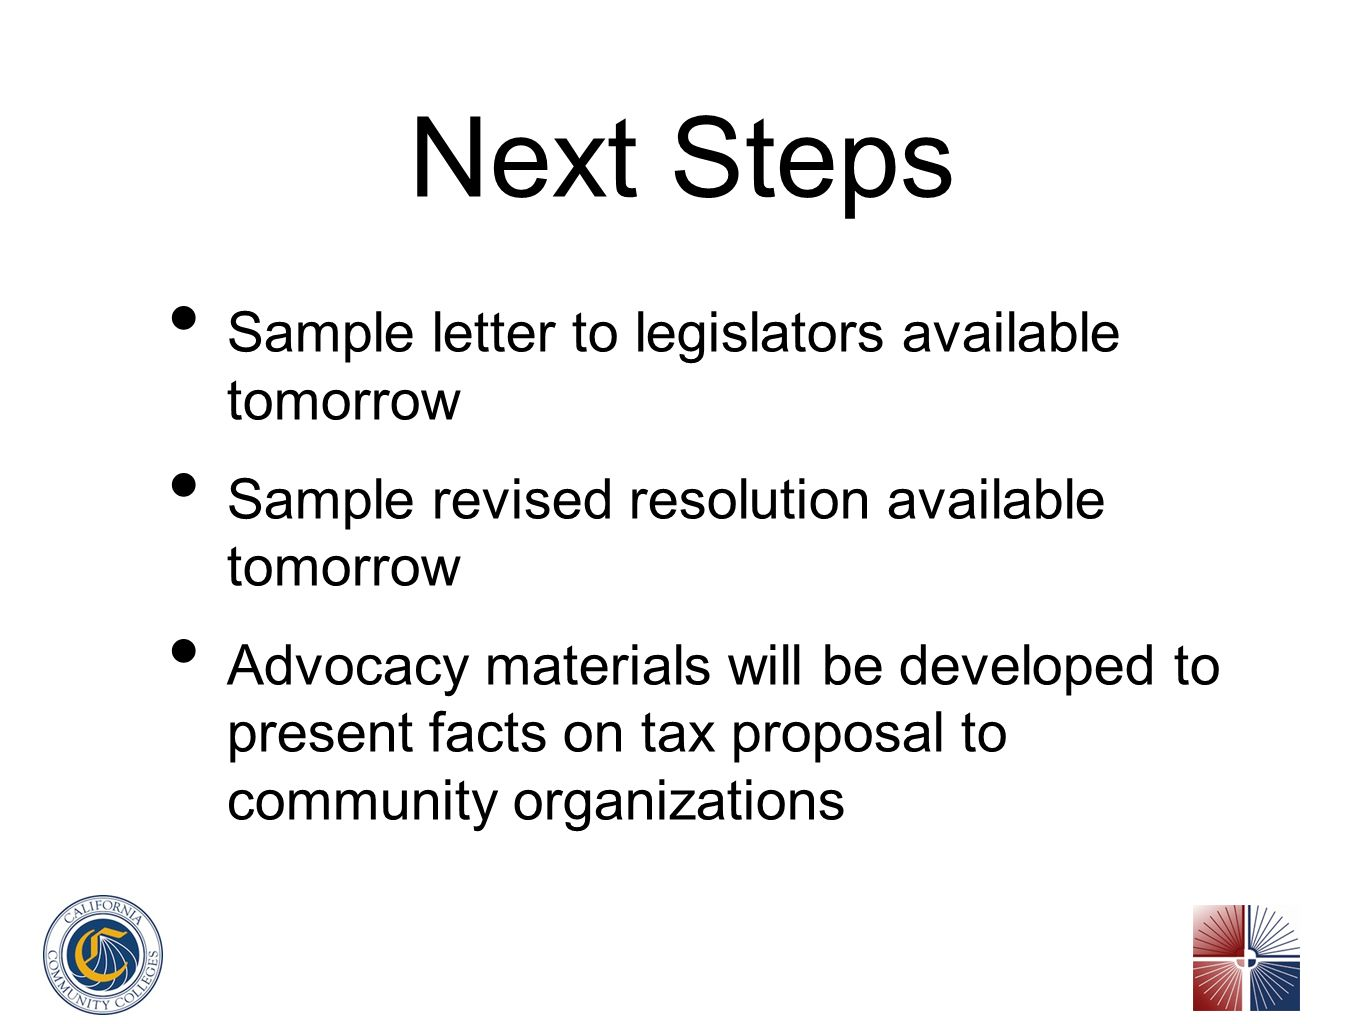 Next Steps Sample letter to legislators available tomorrow Sample revised resolution available tomorrow Advocacy materials will be developed to present facts on tax proposal to community organizations